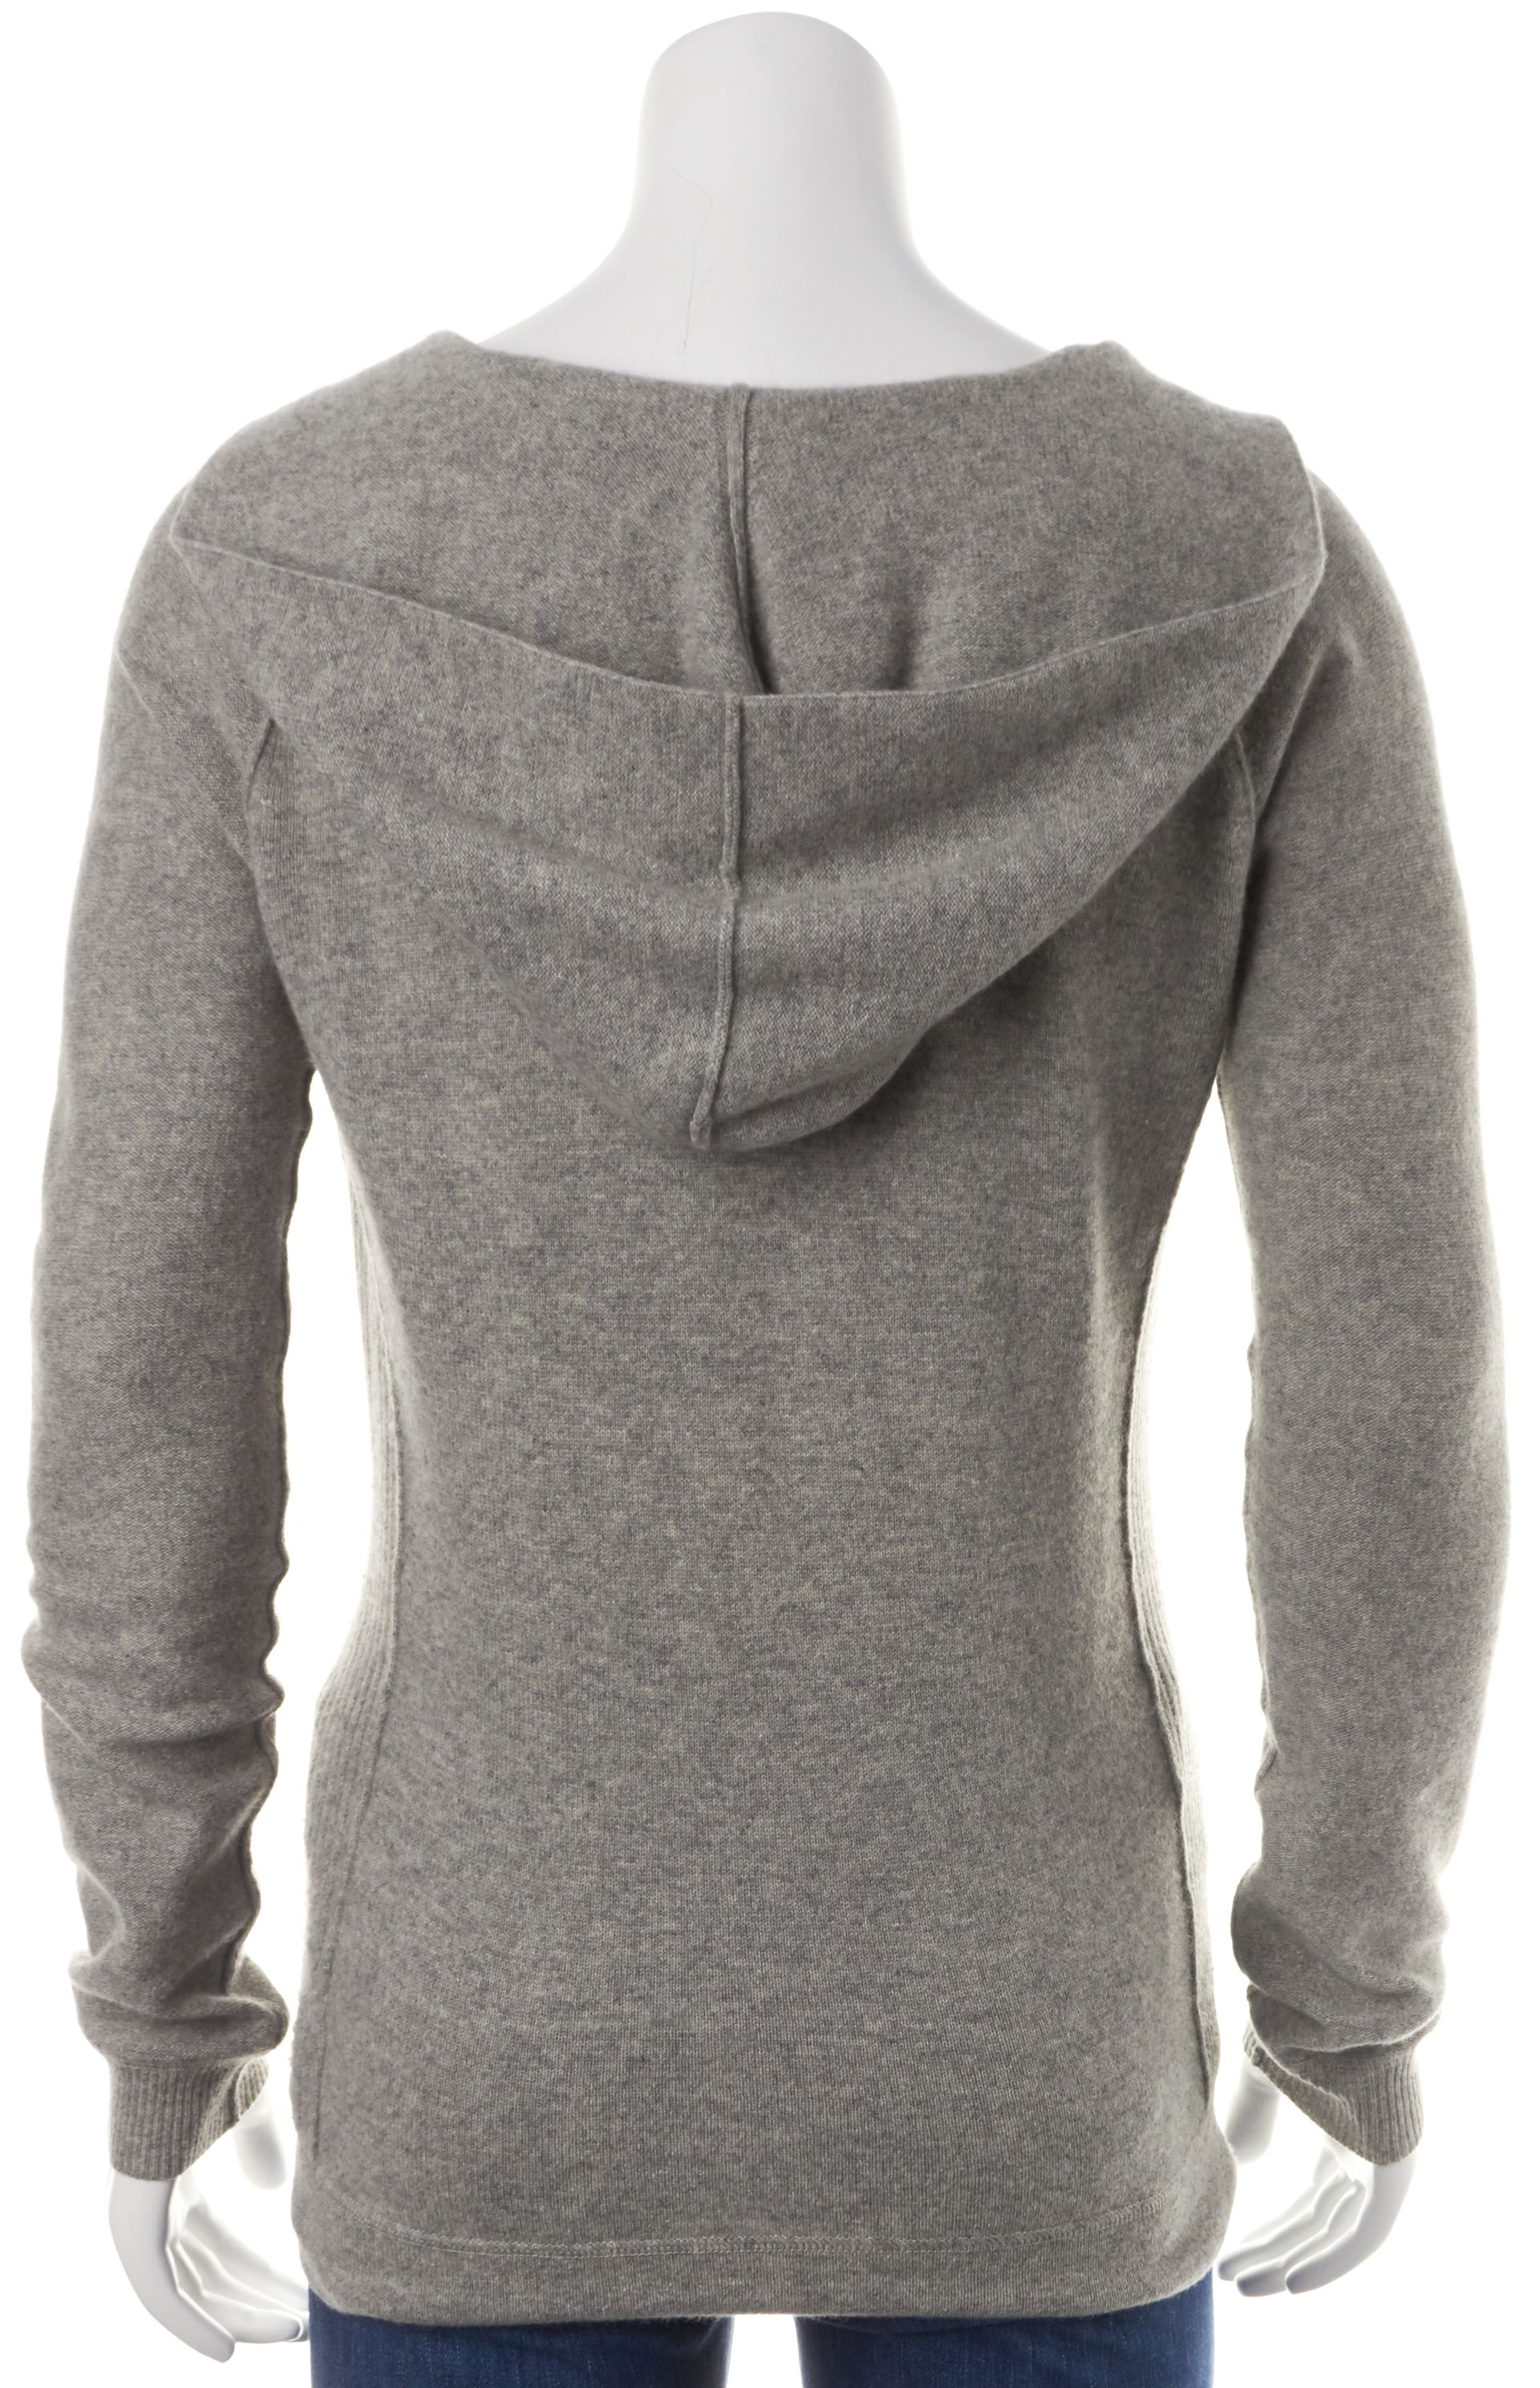 Joie Gray Cashmere Pocket Front Hooded V-Neck Sweater | Material World